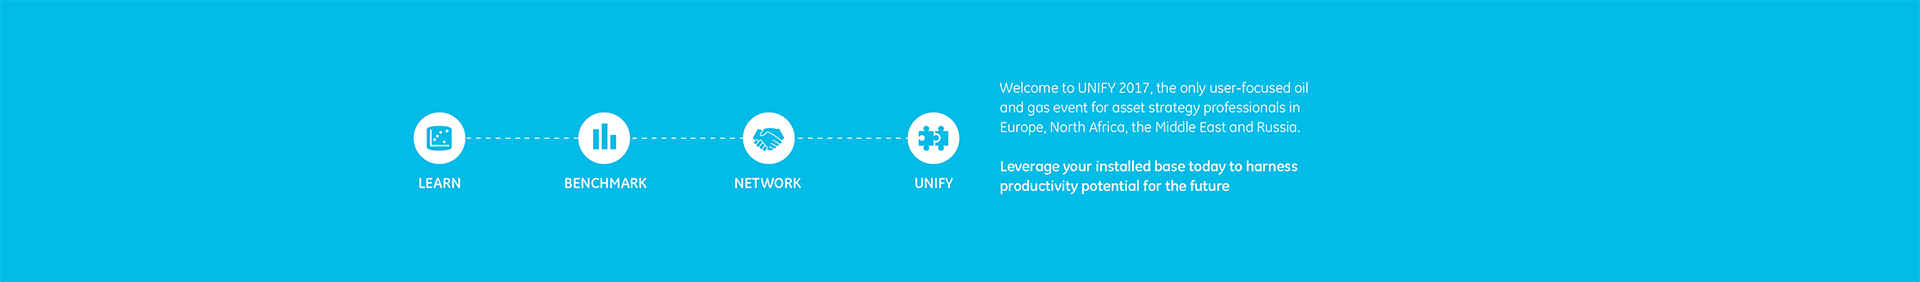 unify-rotating-banner-0